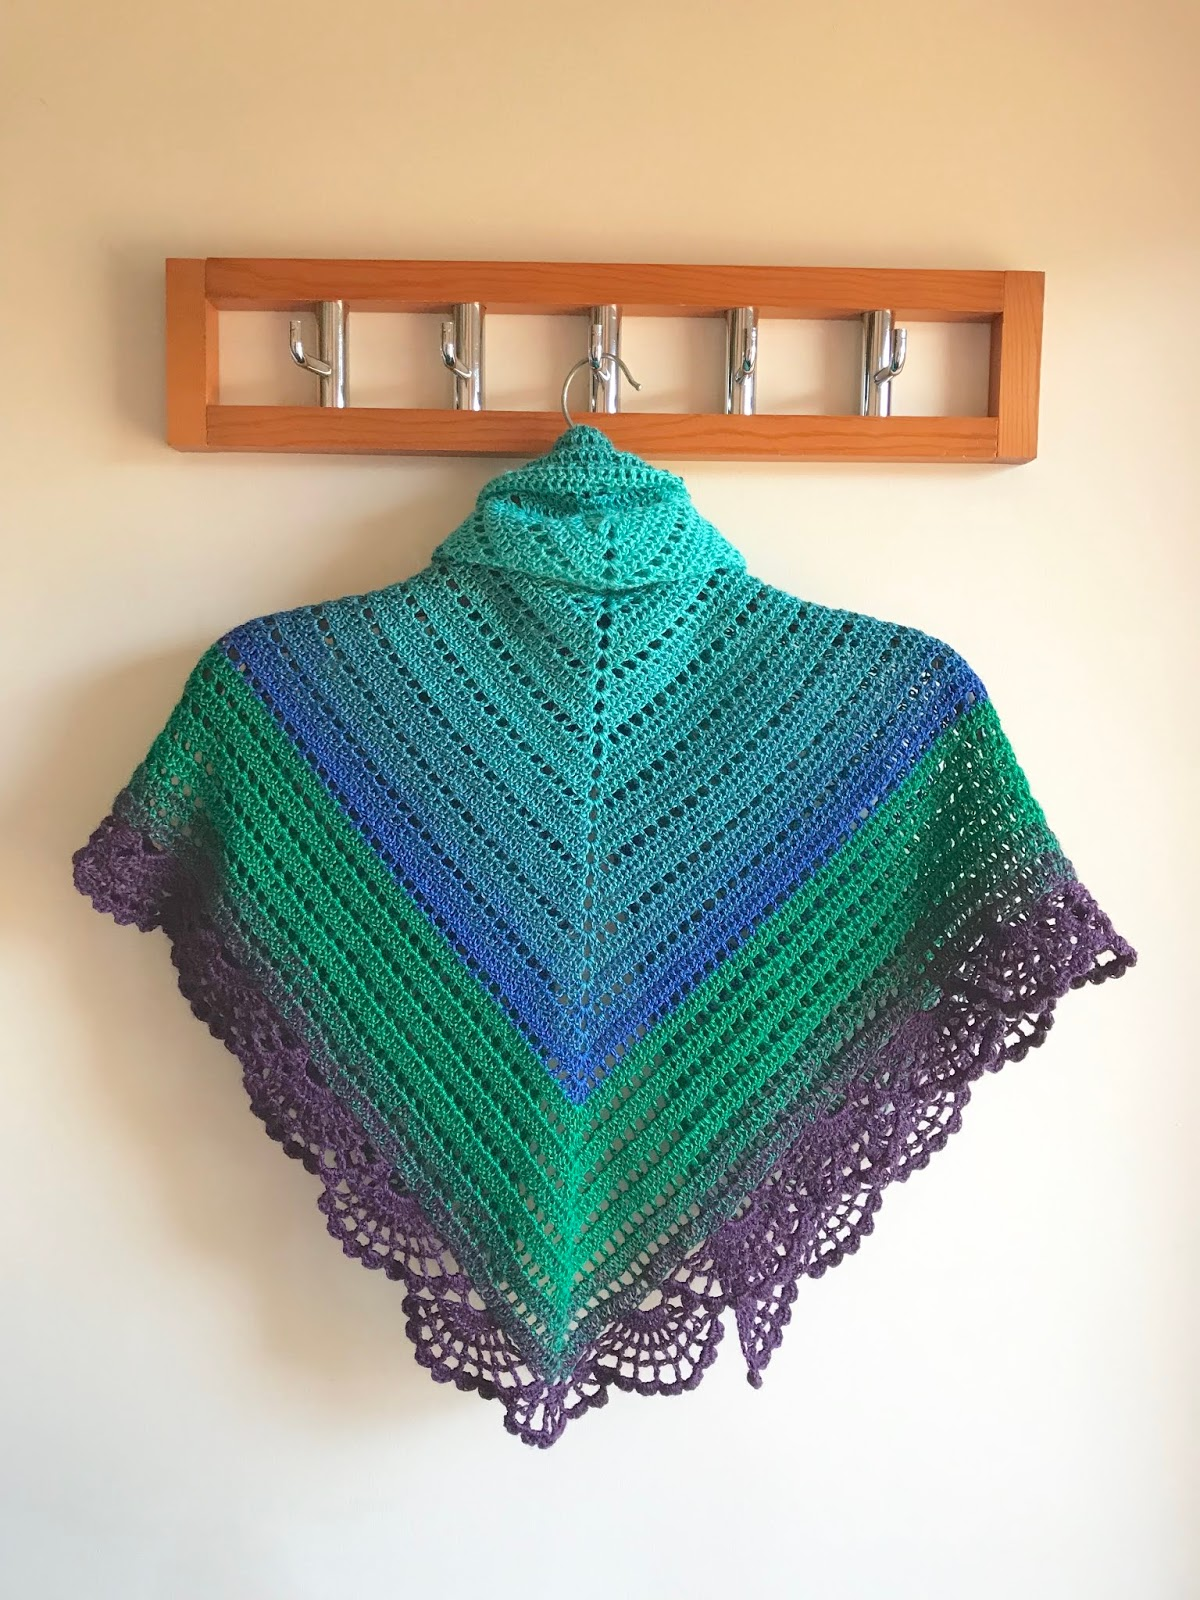 The Peafowl Feathers Shawl FREE pattern release